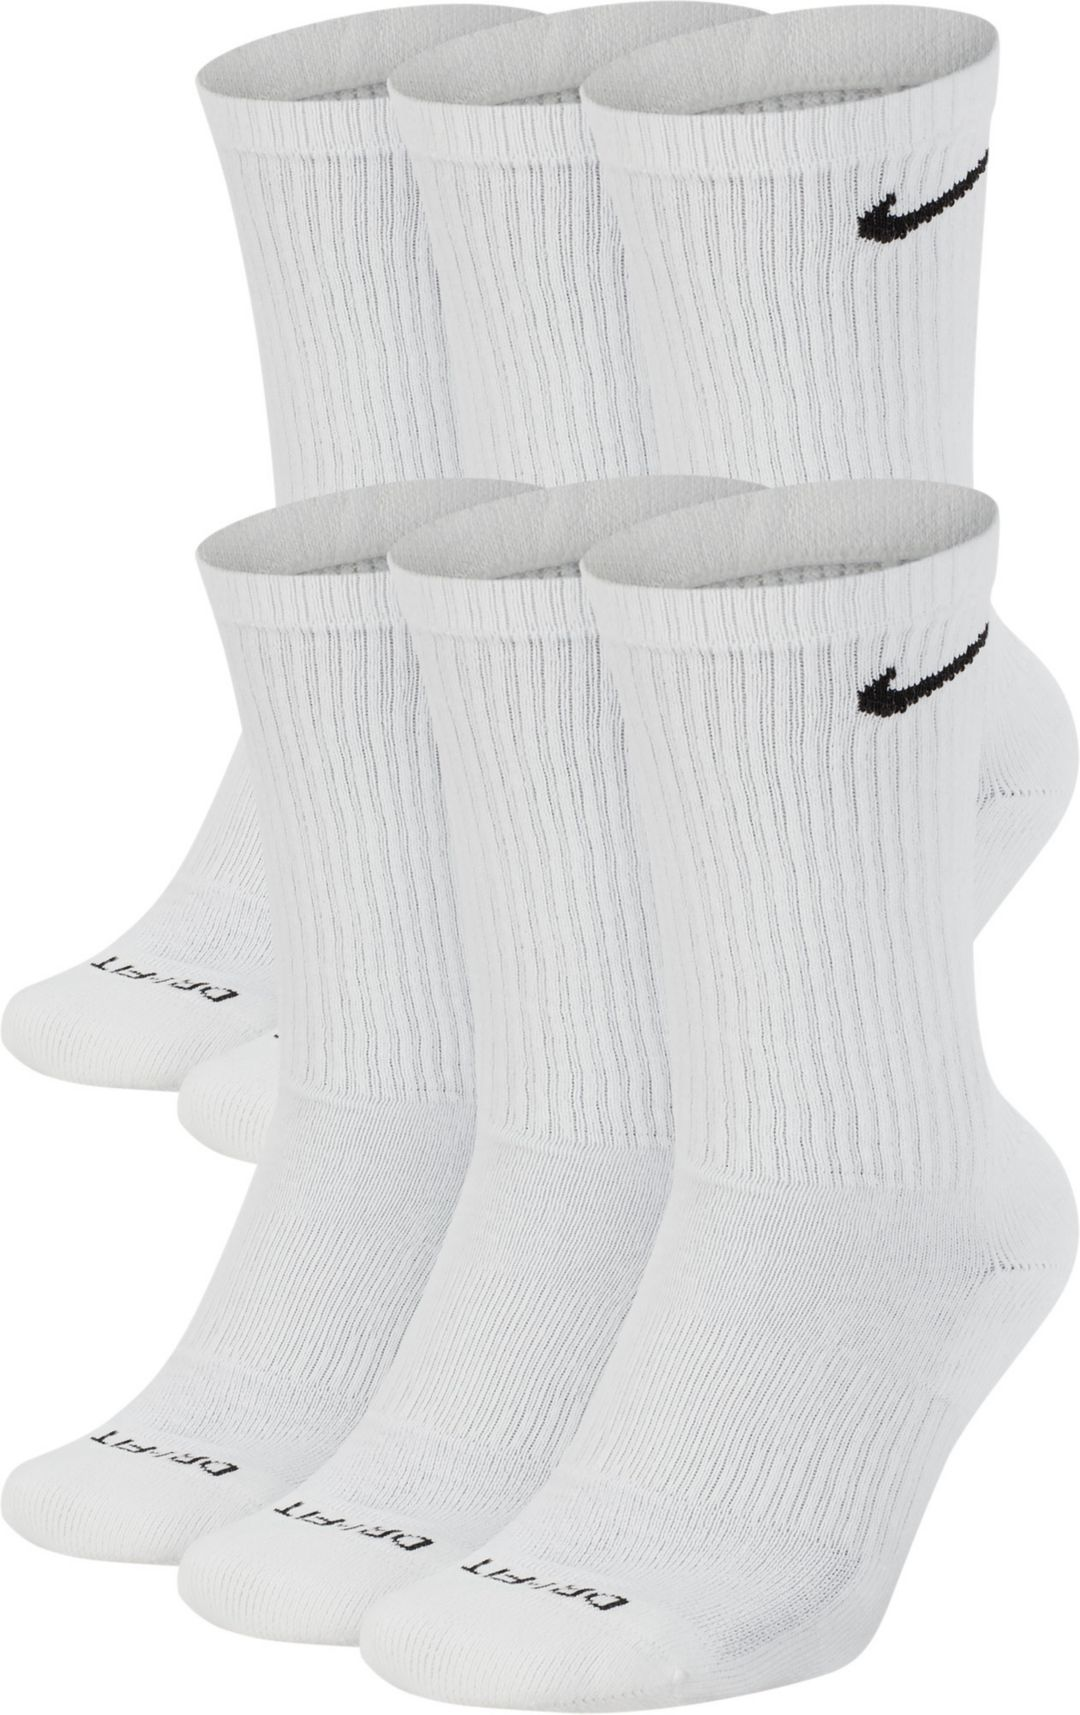 9f8ba694c Nike Dri-FIT Everyday Plus Cushion Training Crew Socks 6 Pack.  noImageFound. Previous